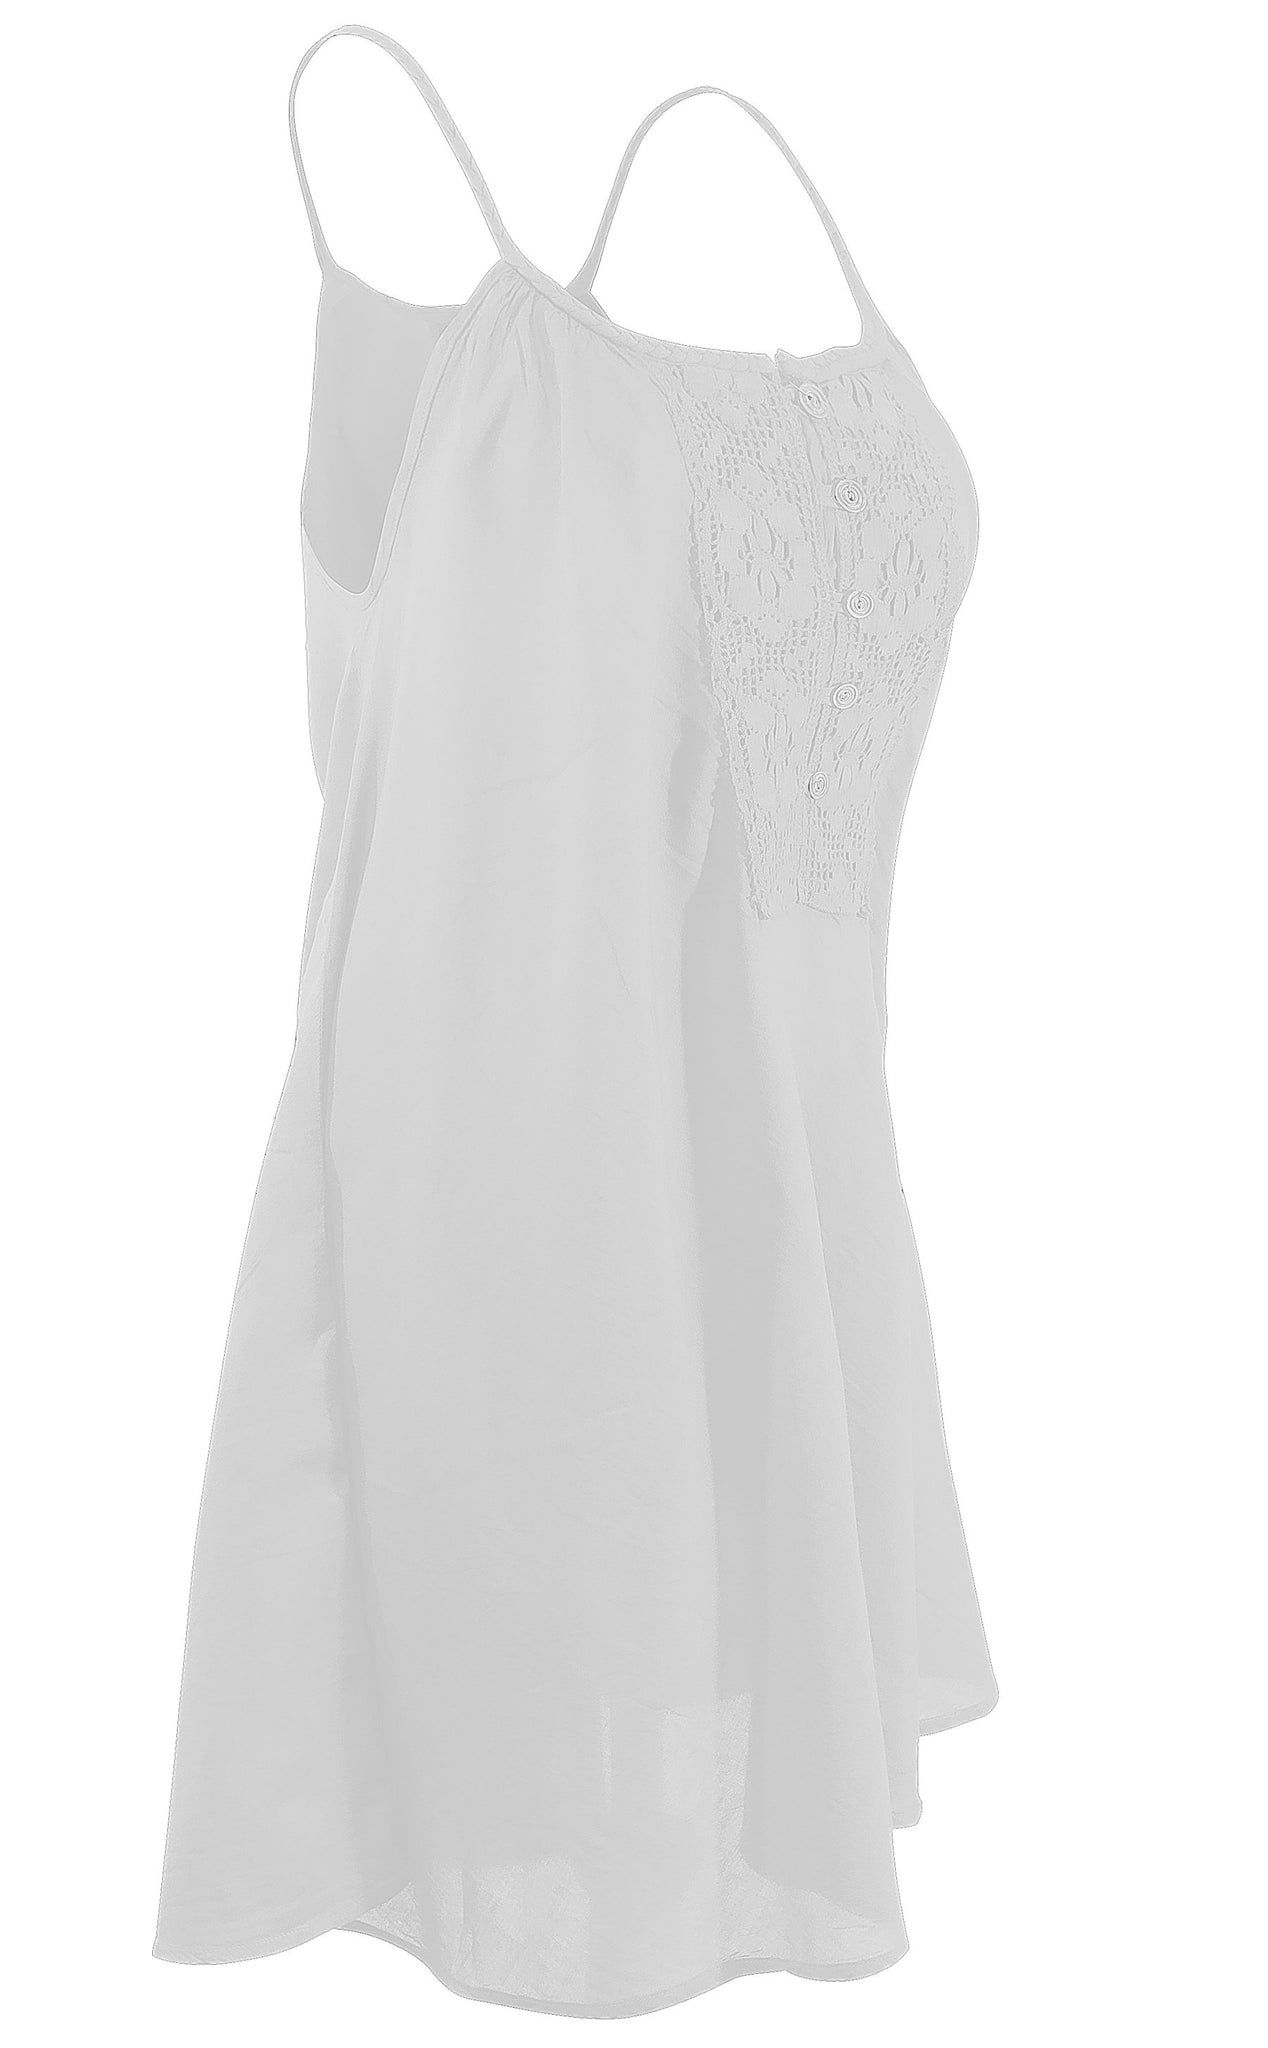 Cotton Dress Mini/Thigh Length Plait strap with Lace Front - CCCollections